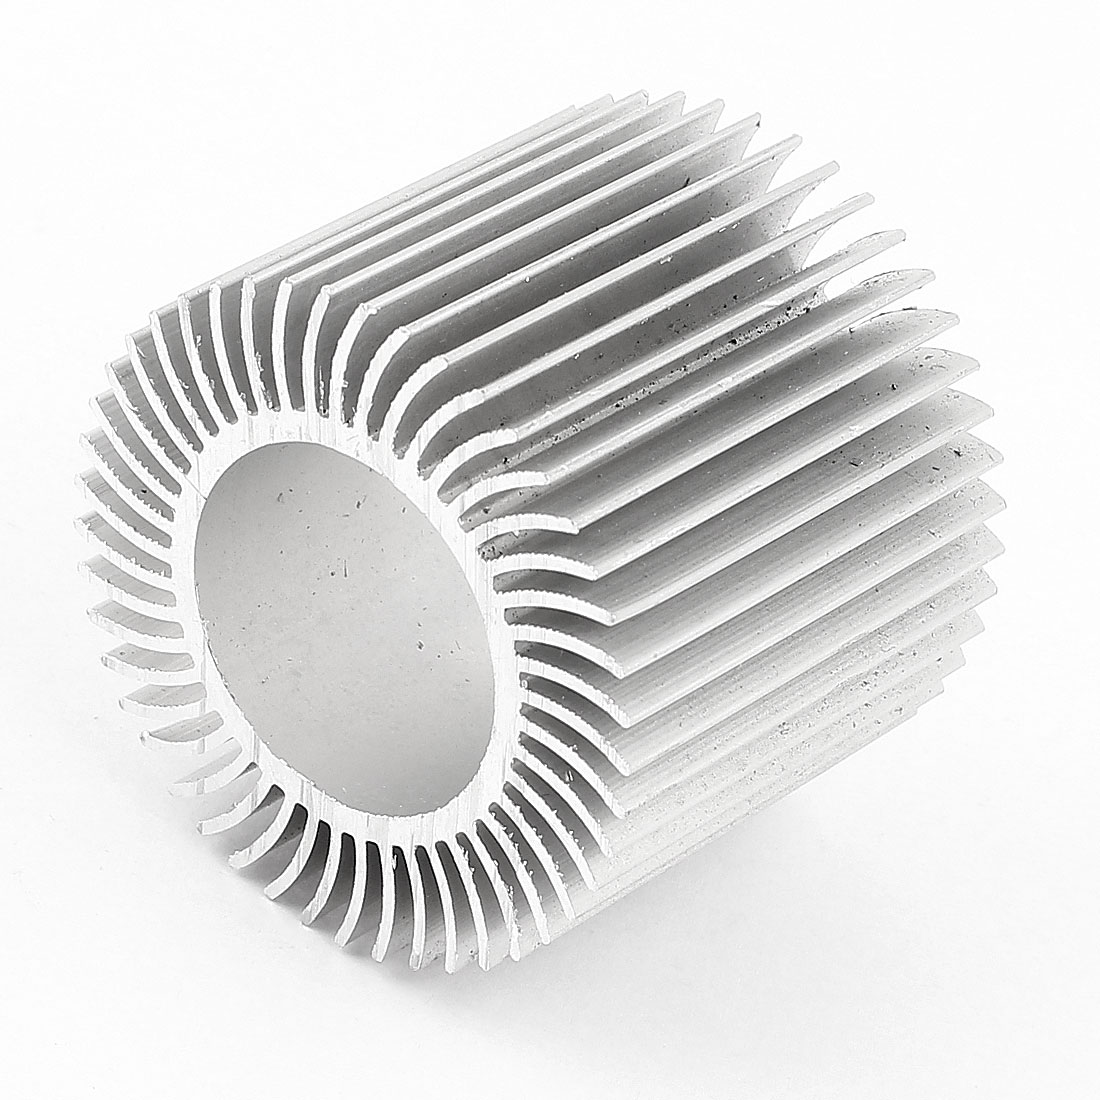 50mm x 40mm Cylinder 3W High Power LED Heatsink Aluminium Cooling Fin